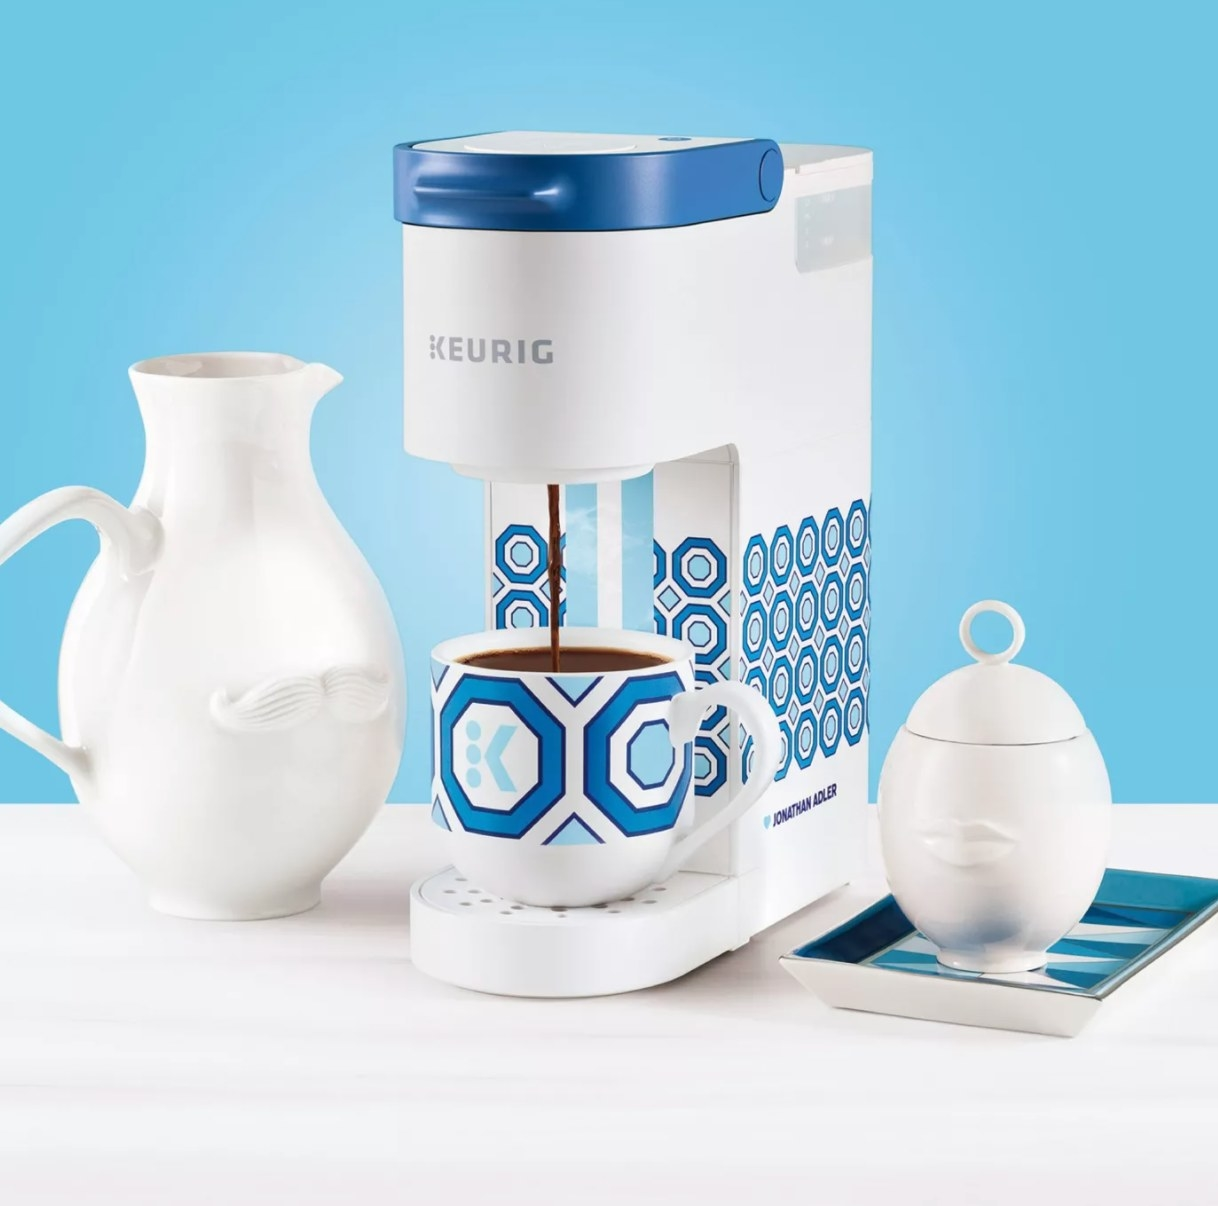 The blue and white Keurig